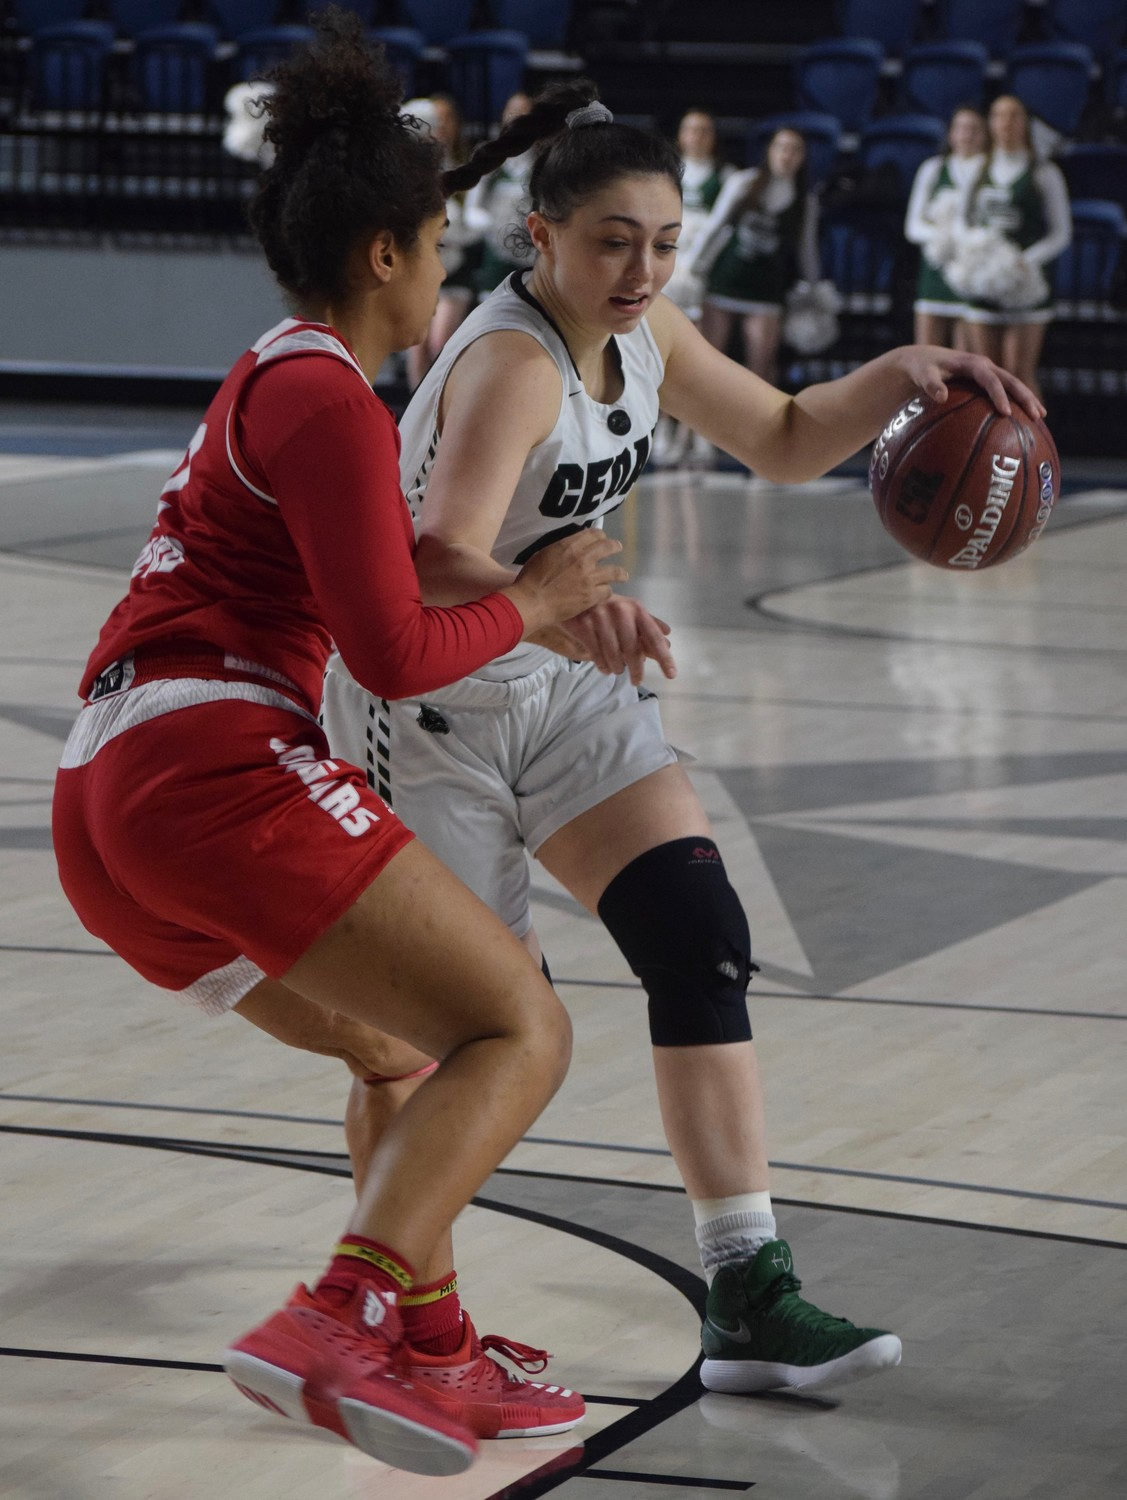 Nicole Leff and Cedar Park lost to Crosby 53-47 at the Delmar Fieldhouse in the regional semifinals.